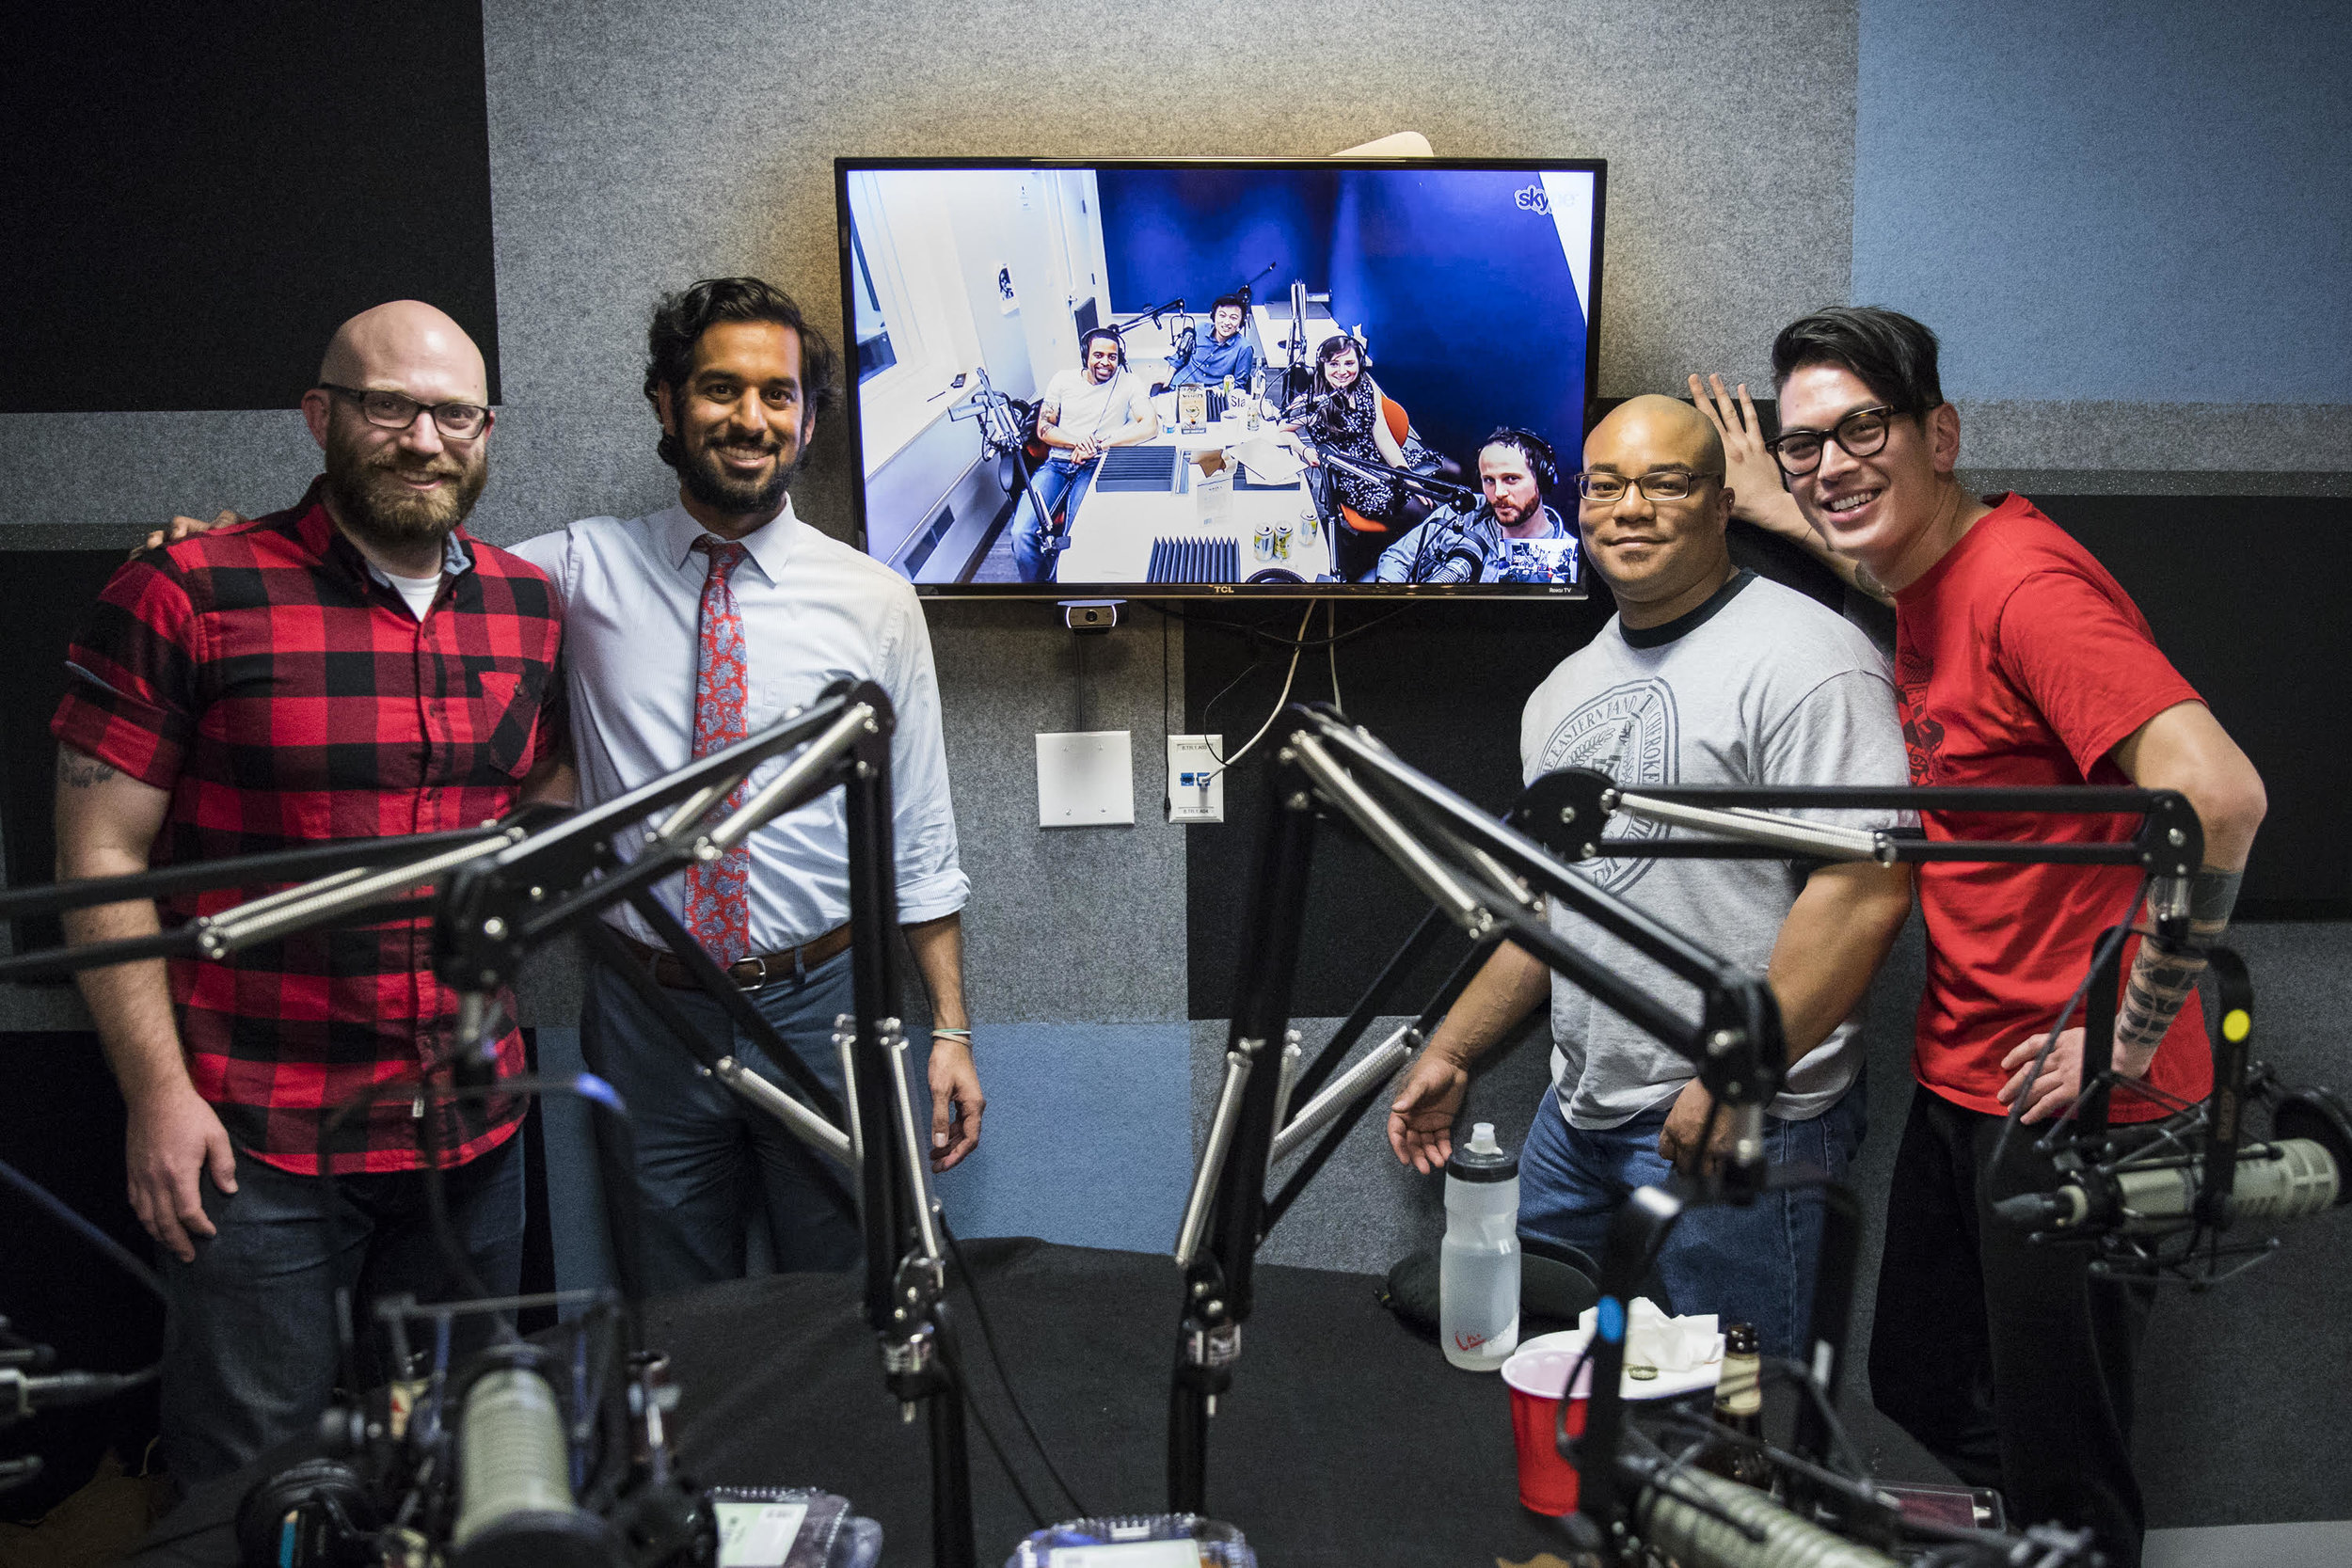 Sam, Nikhil, Rahsaan, and Eric in Panoply's DC studio, and on the big screen is Ryan, Z., Andrea, and Terrence in NYC.